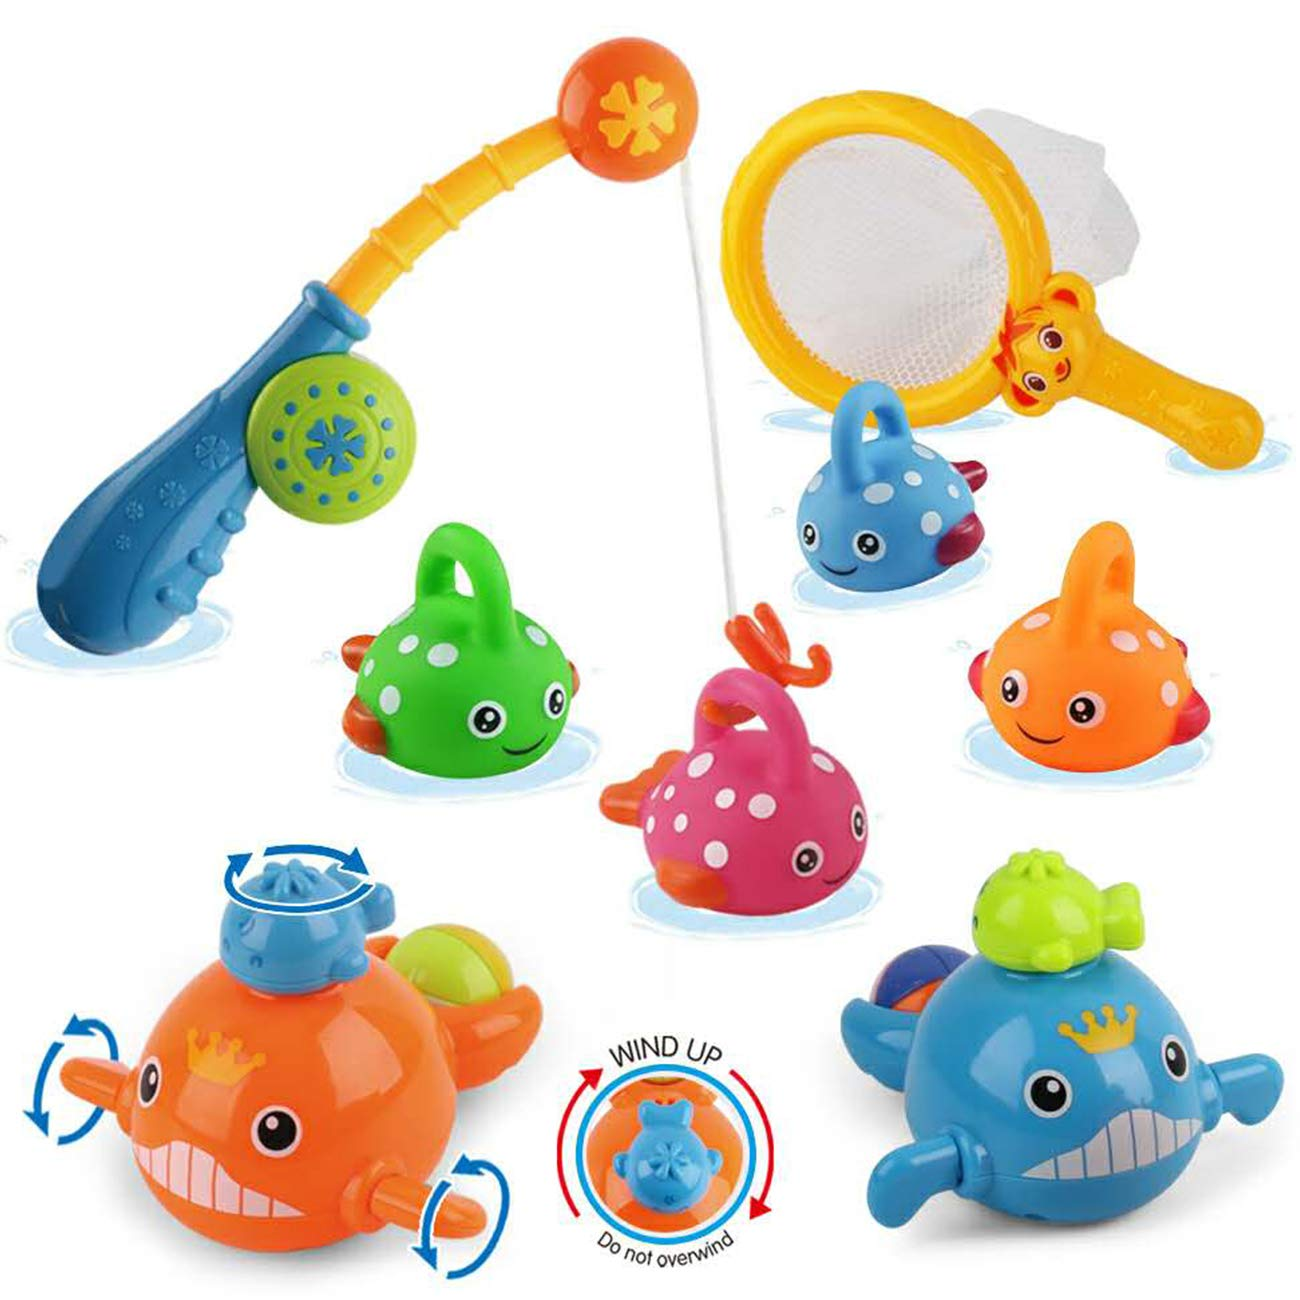 Dwi Dowellin Baby Bath Toys Mold Free Fishing Games Water Pool Bathtub Toy for Toddlers Kids Infant Girls and Boys Fun Bath Time Bathroom Tub Wind Up Swimming Whales Fish Set